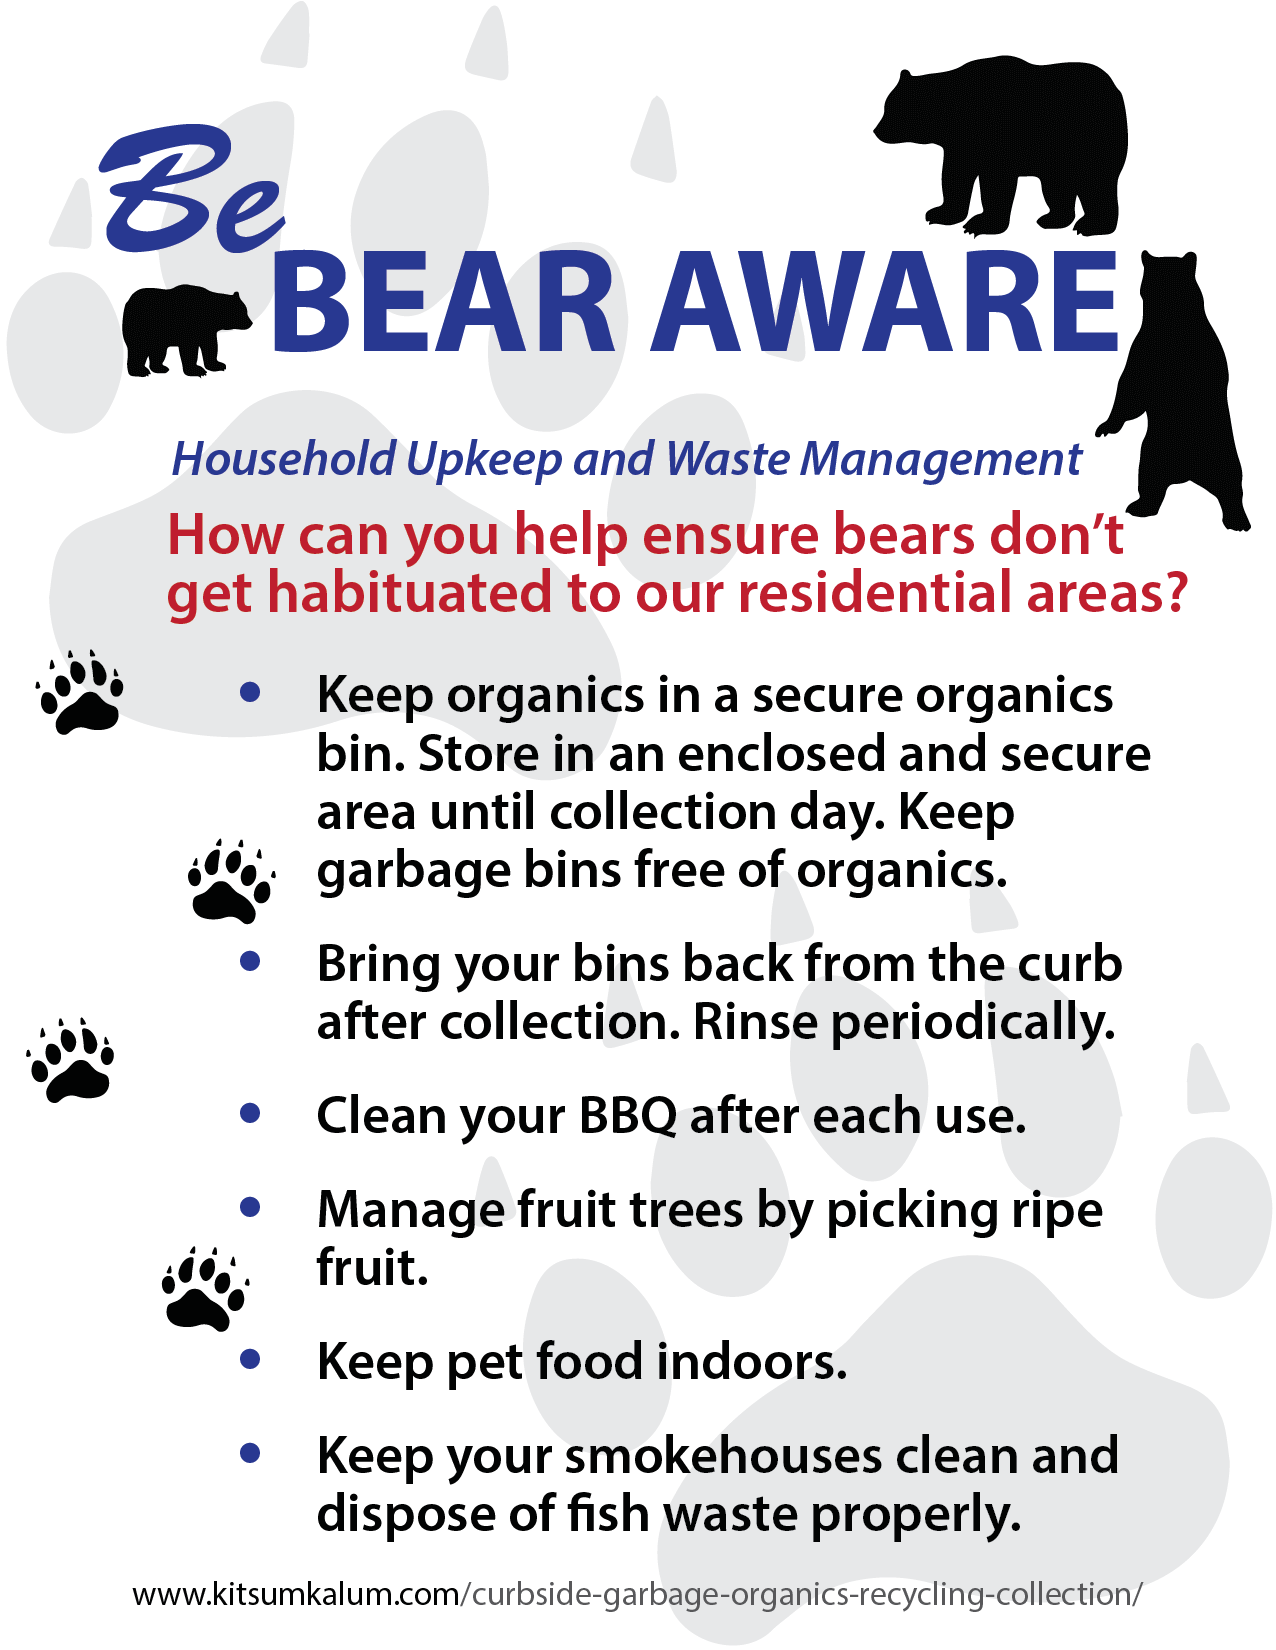 Be Bear Aware : Household Upkeep and Waste Management